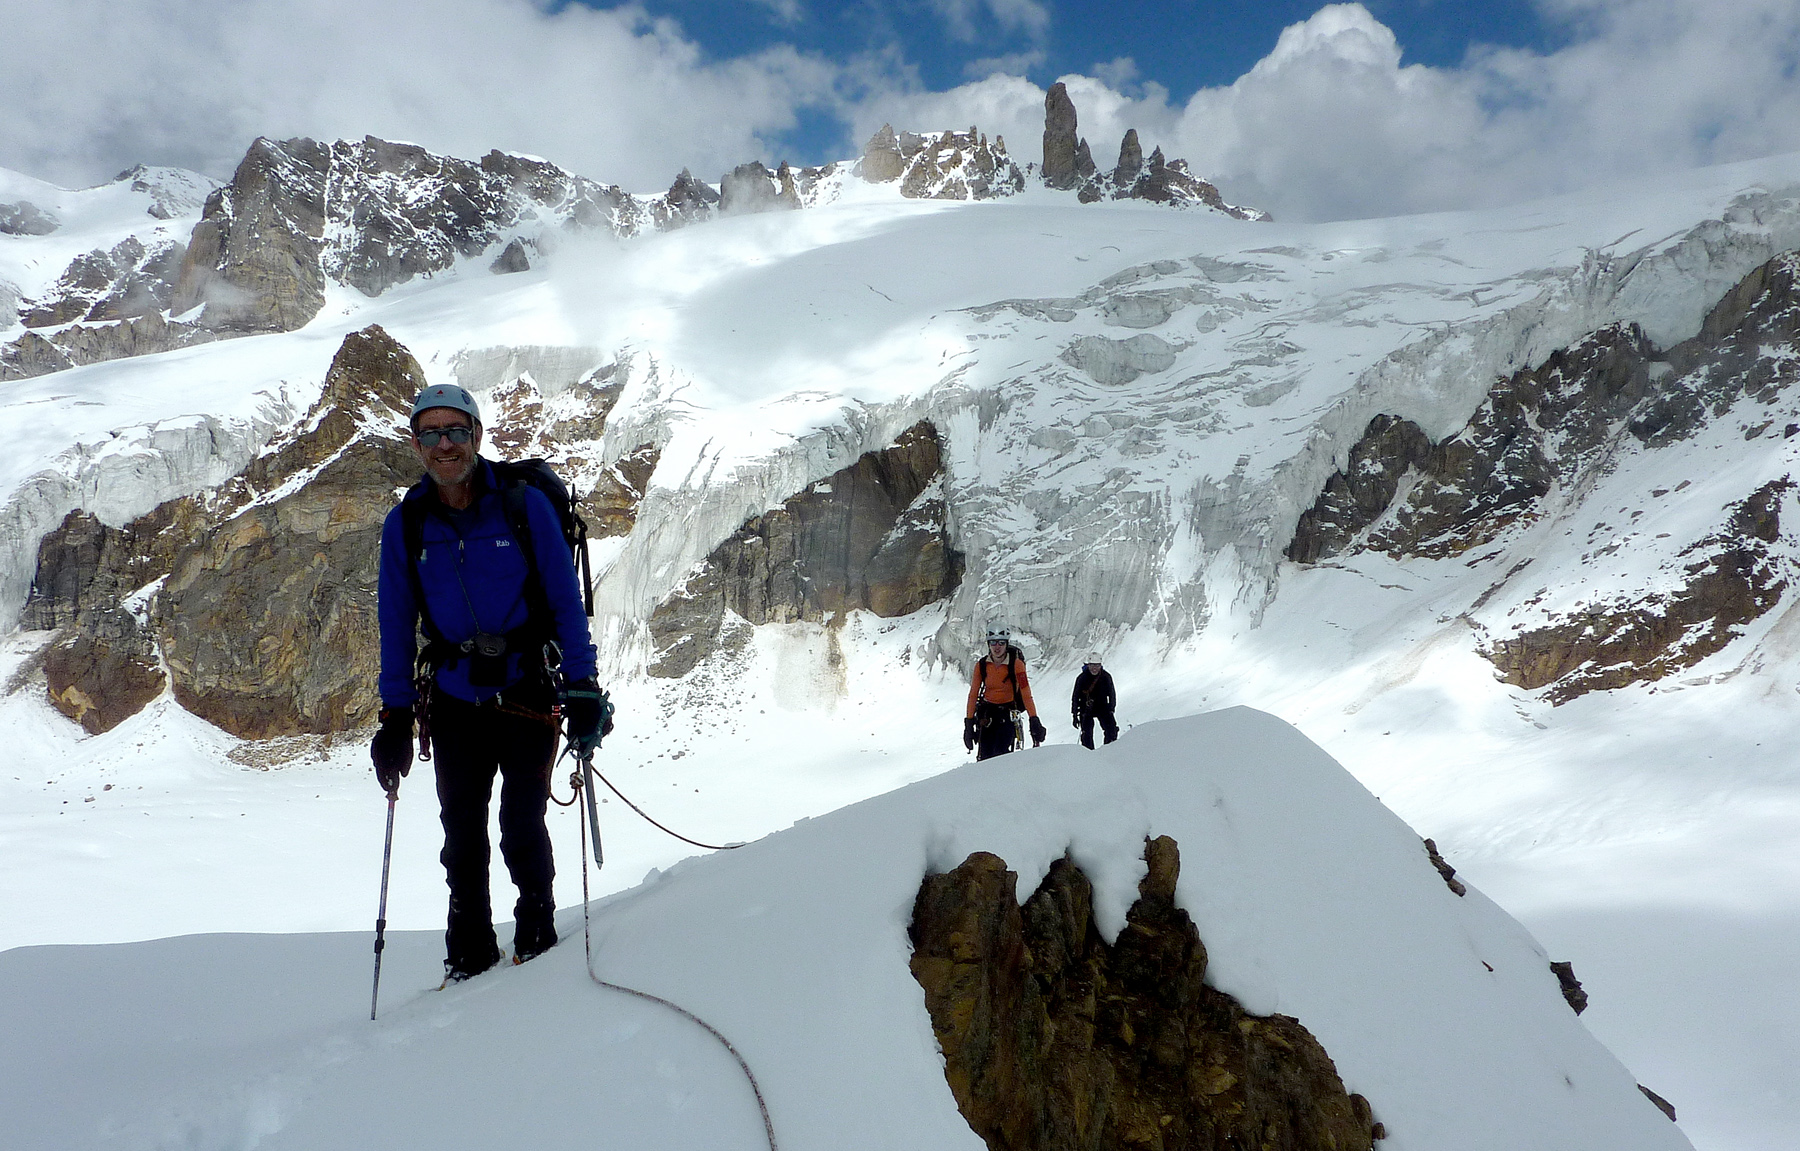 At the summit of Tribulation Point. Sentinel Peak is the rock summit immediately above the head of the foreground climber (Derek Buckle). Directly behind this is the broad-topped Snow Leopard Peak. The south wall, facing the camera, is split by an obvious broad couloir system. The route of ascent started right of this and slanted left up a ramp to its top. The rock on the splendid 'aiguille' looked superb, though it is a long approach for a short climb. Mike Cocker